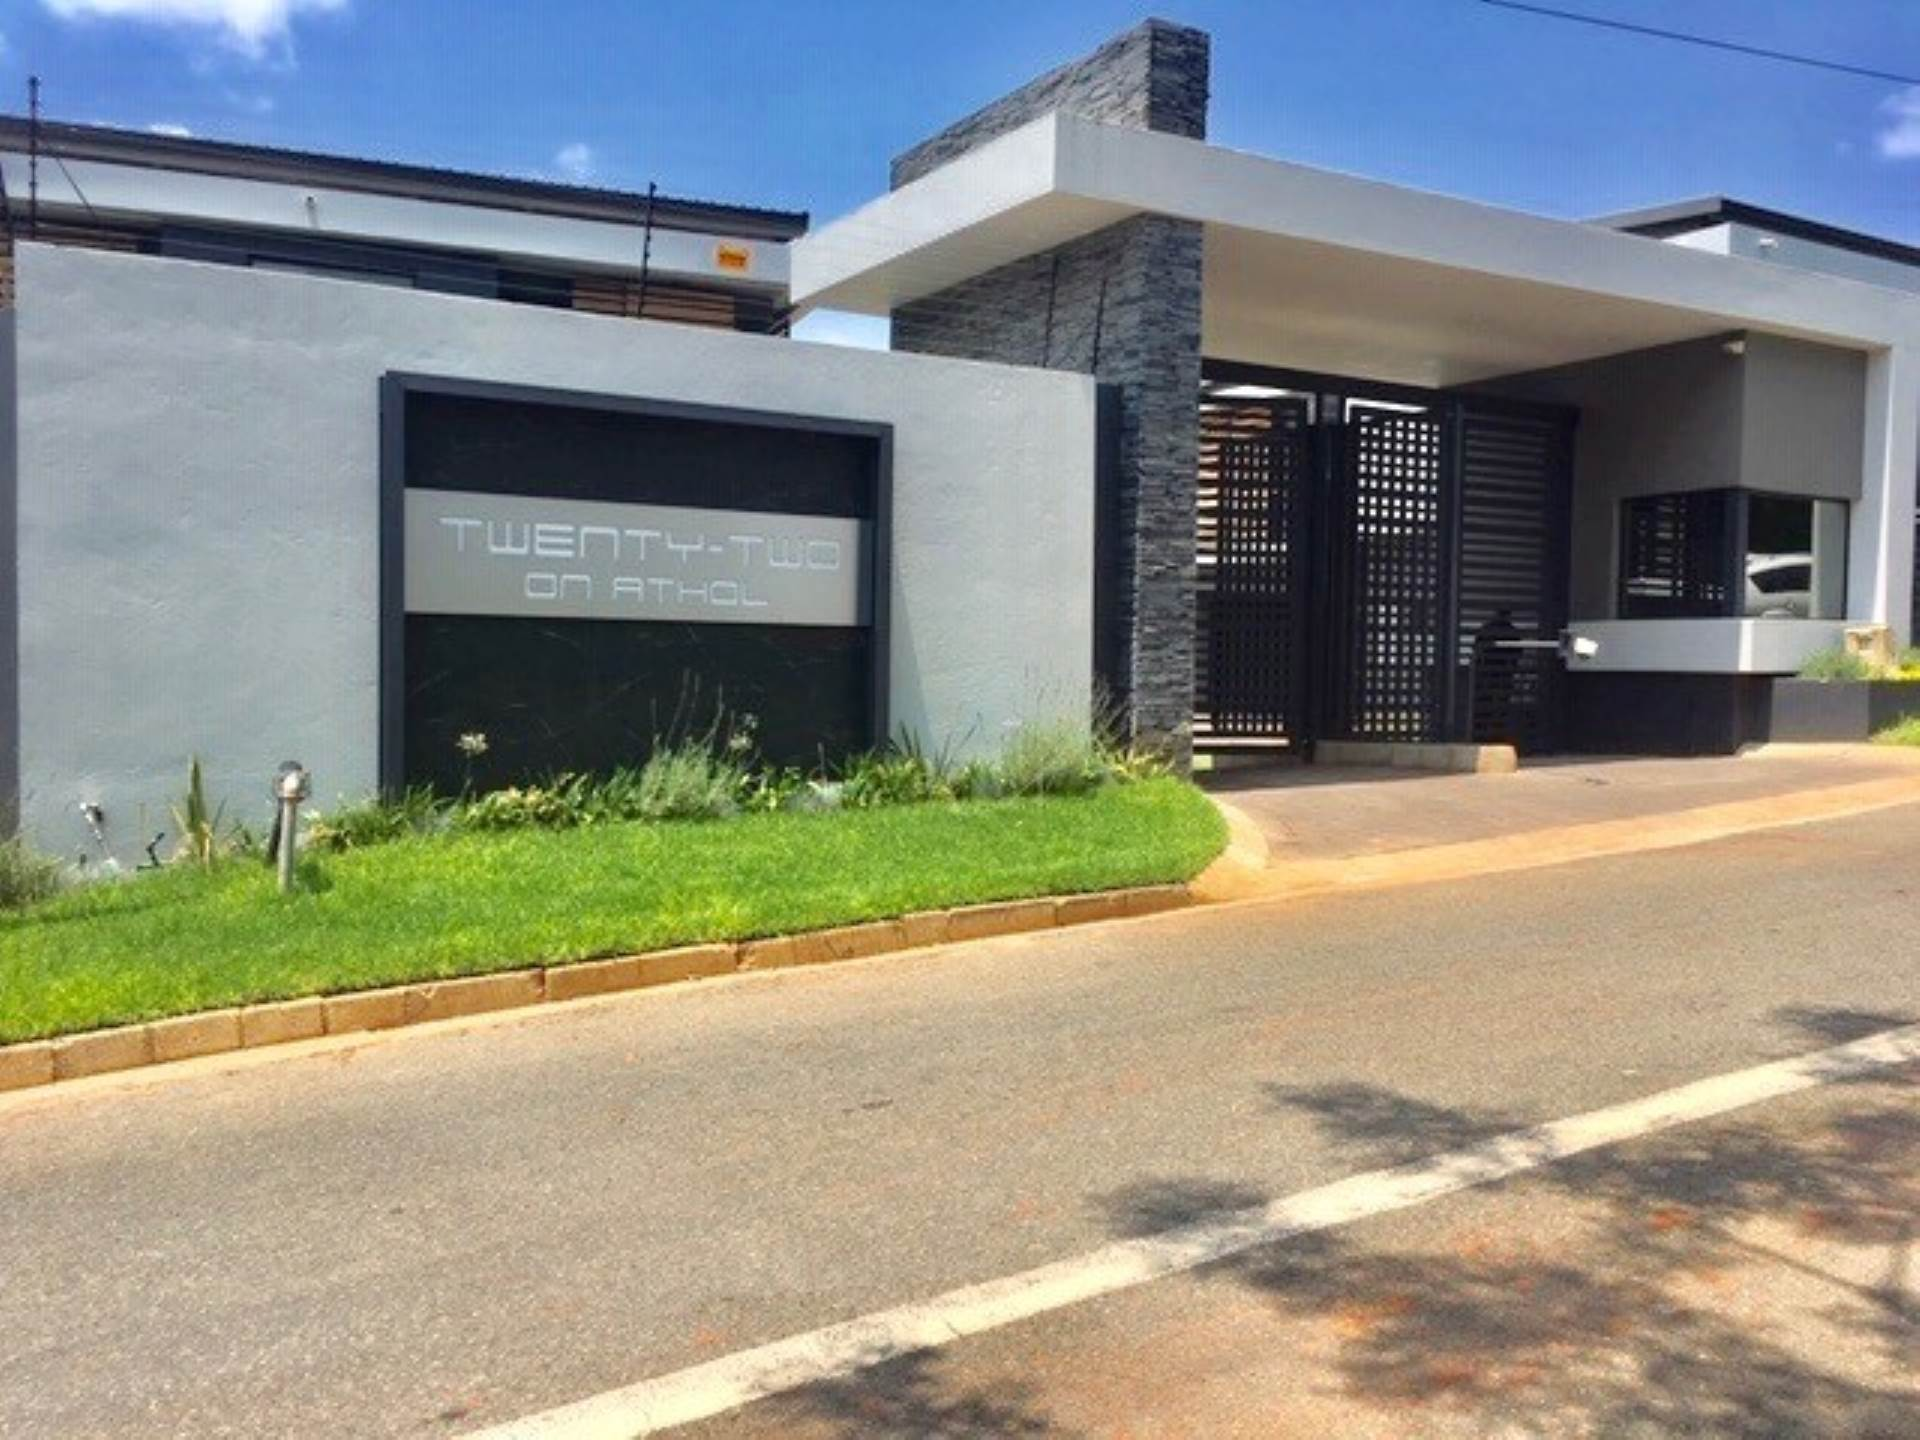 Townhouse To Let - Available: KENTVIEW, SANDTON (Bath : 3.5 - Beds : 3.0 - FURNISHED TOWNHOUSE  New, modern, upmarket, stand alone duplex townhouse  in Kentview Sandton.   ...